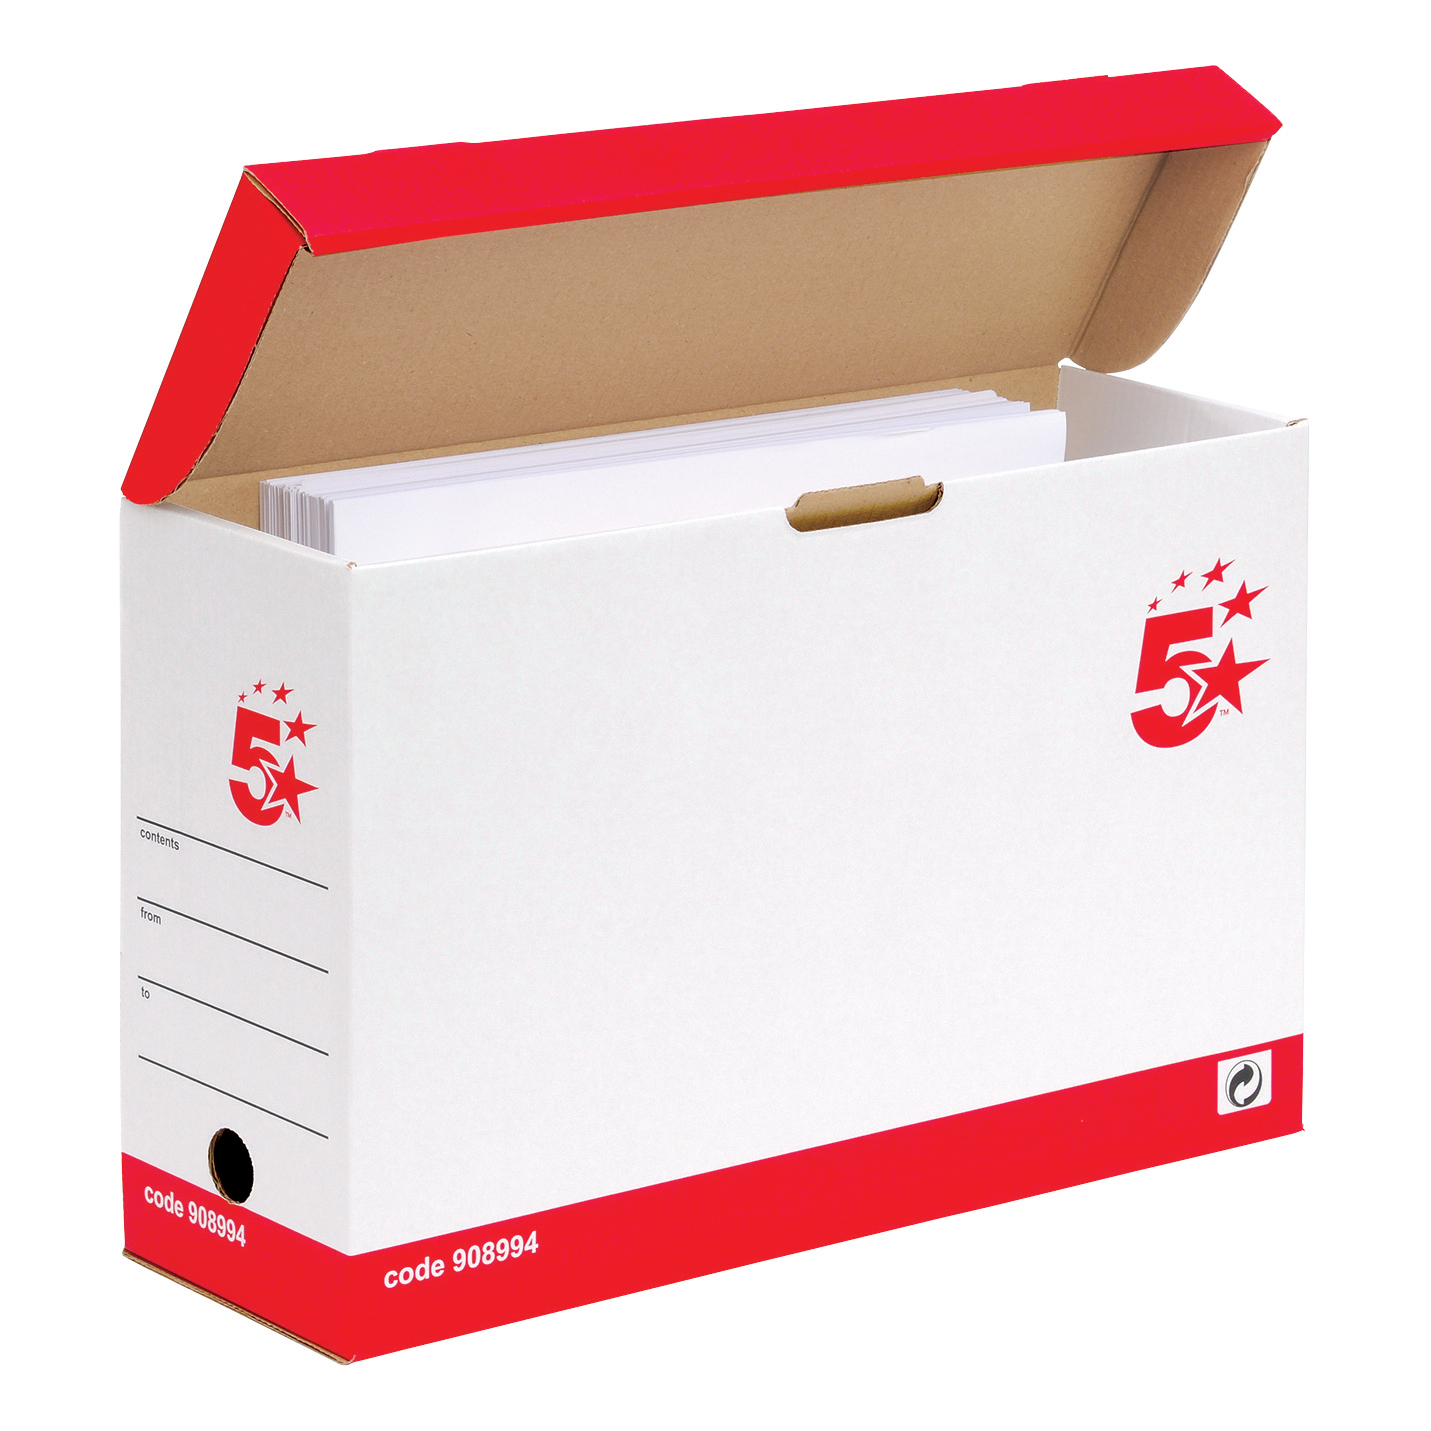 Storage Bags 5 Star Office FSC Transfer Case Hinged Lid Foolscap Self-assembly W133xD401xH257mm Red & White Pack 20